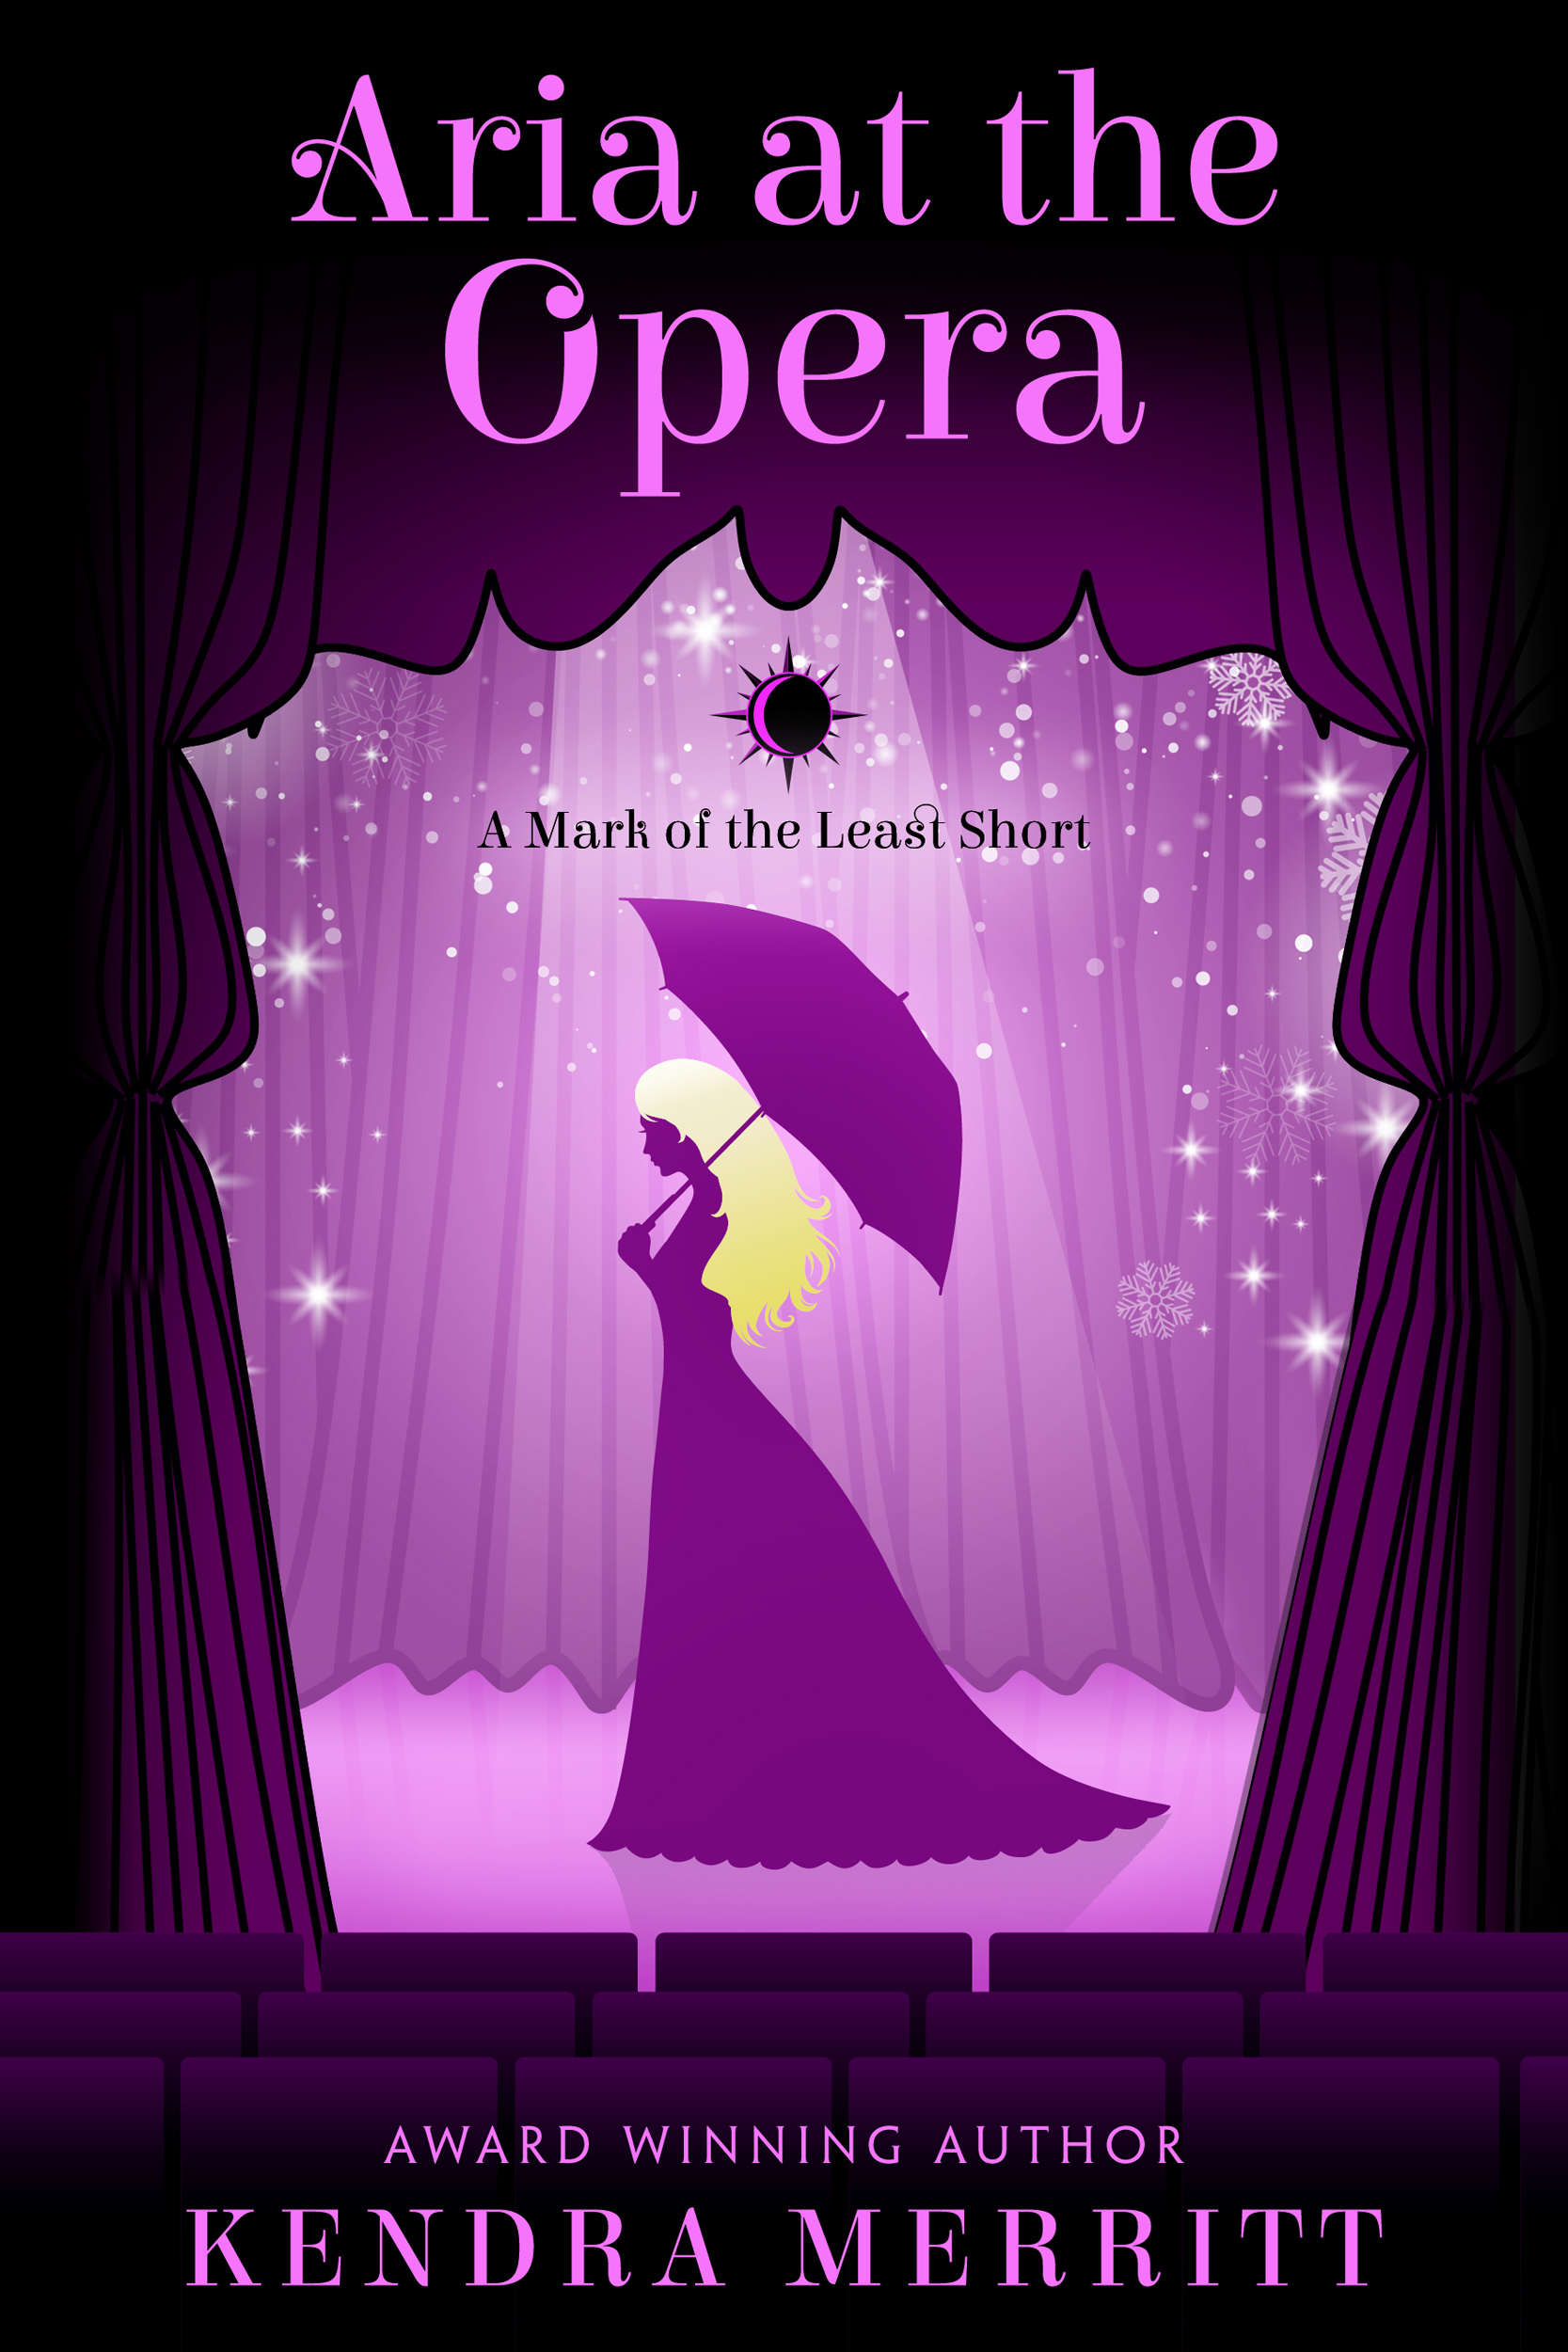 "The show's not over till the soprano dies… - Aria has dreamed of the opera ever since her parents died. Now she has a chance to earn her place on the most famous stage in Namerre. The only problem is sopranos are dropping like flies and the rest of the performers are convinced the part is cursed. Aria has to figure out the truth behind the ""ghost"" since he seems intent on killing the lead soprano… and she's just gotten the part."